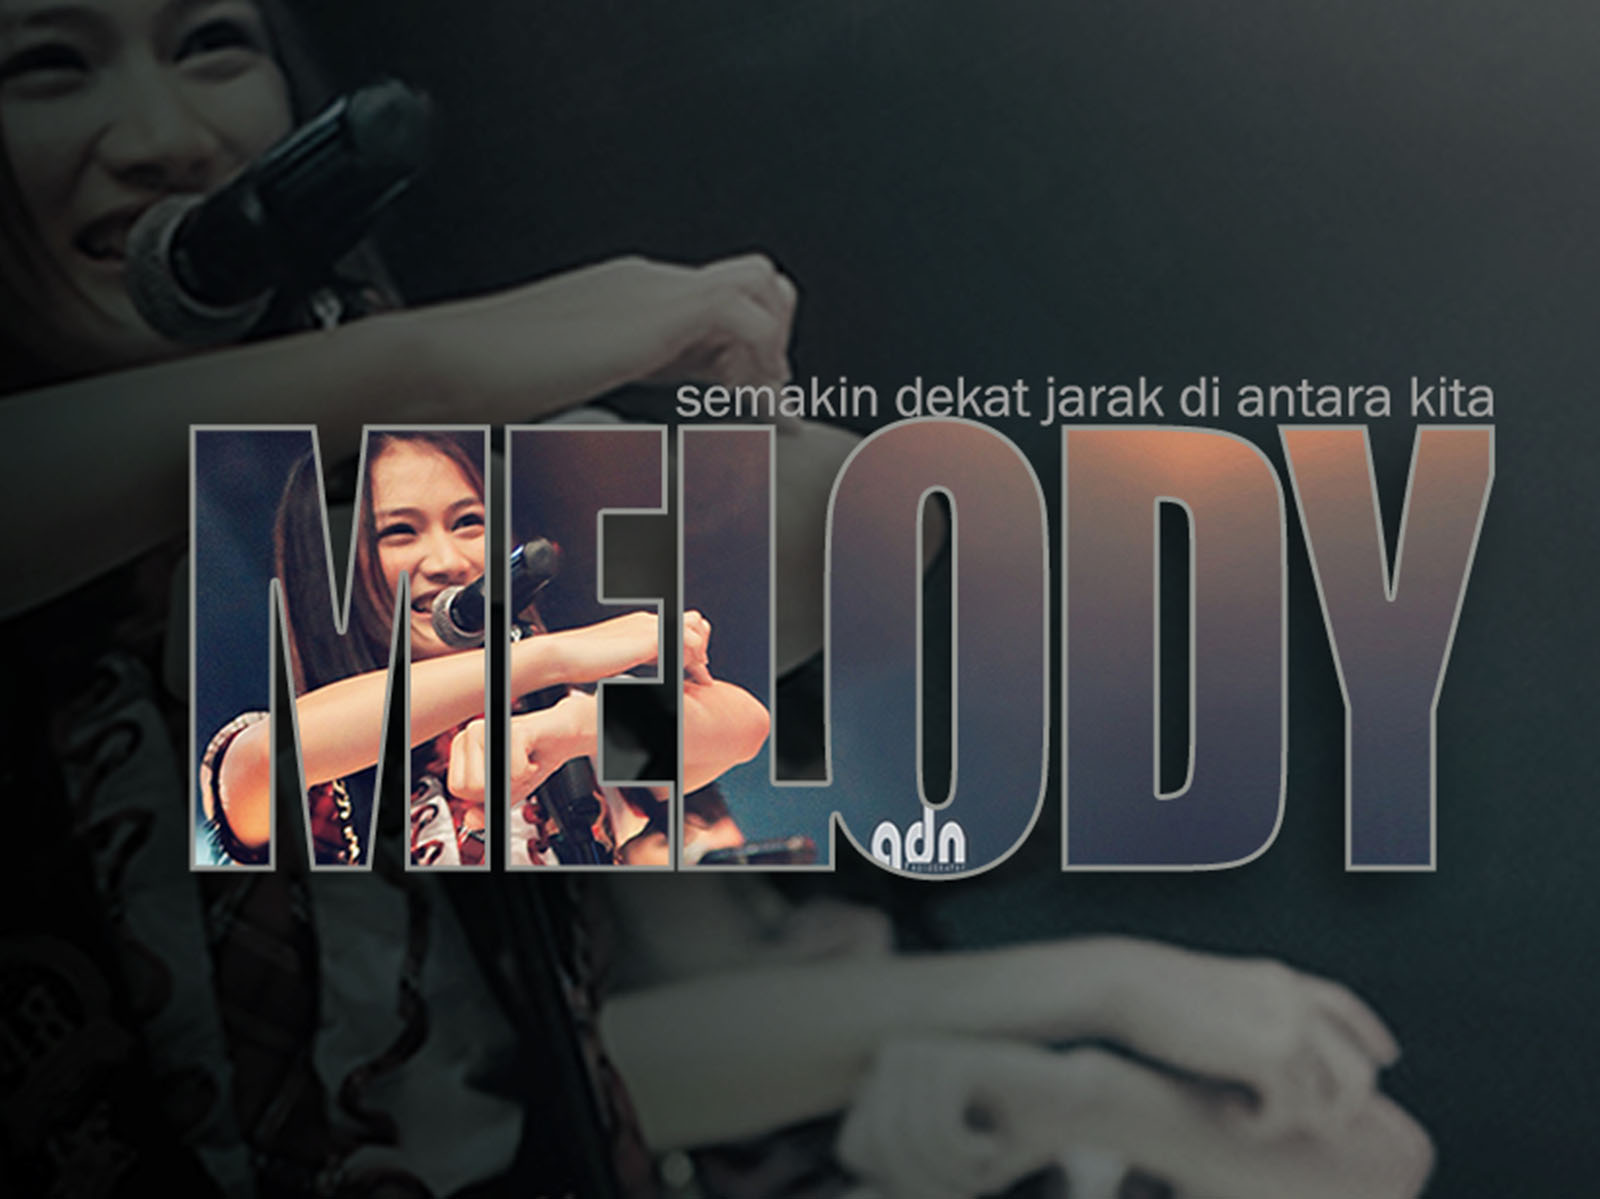 JKT48 Melody hebirot - JKT48 Photo (33450552) - Fanpop